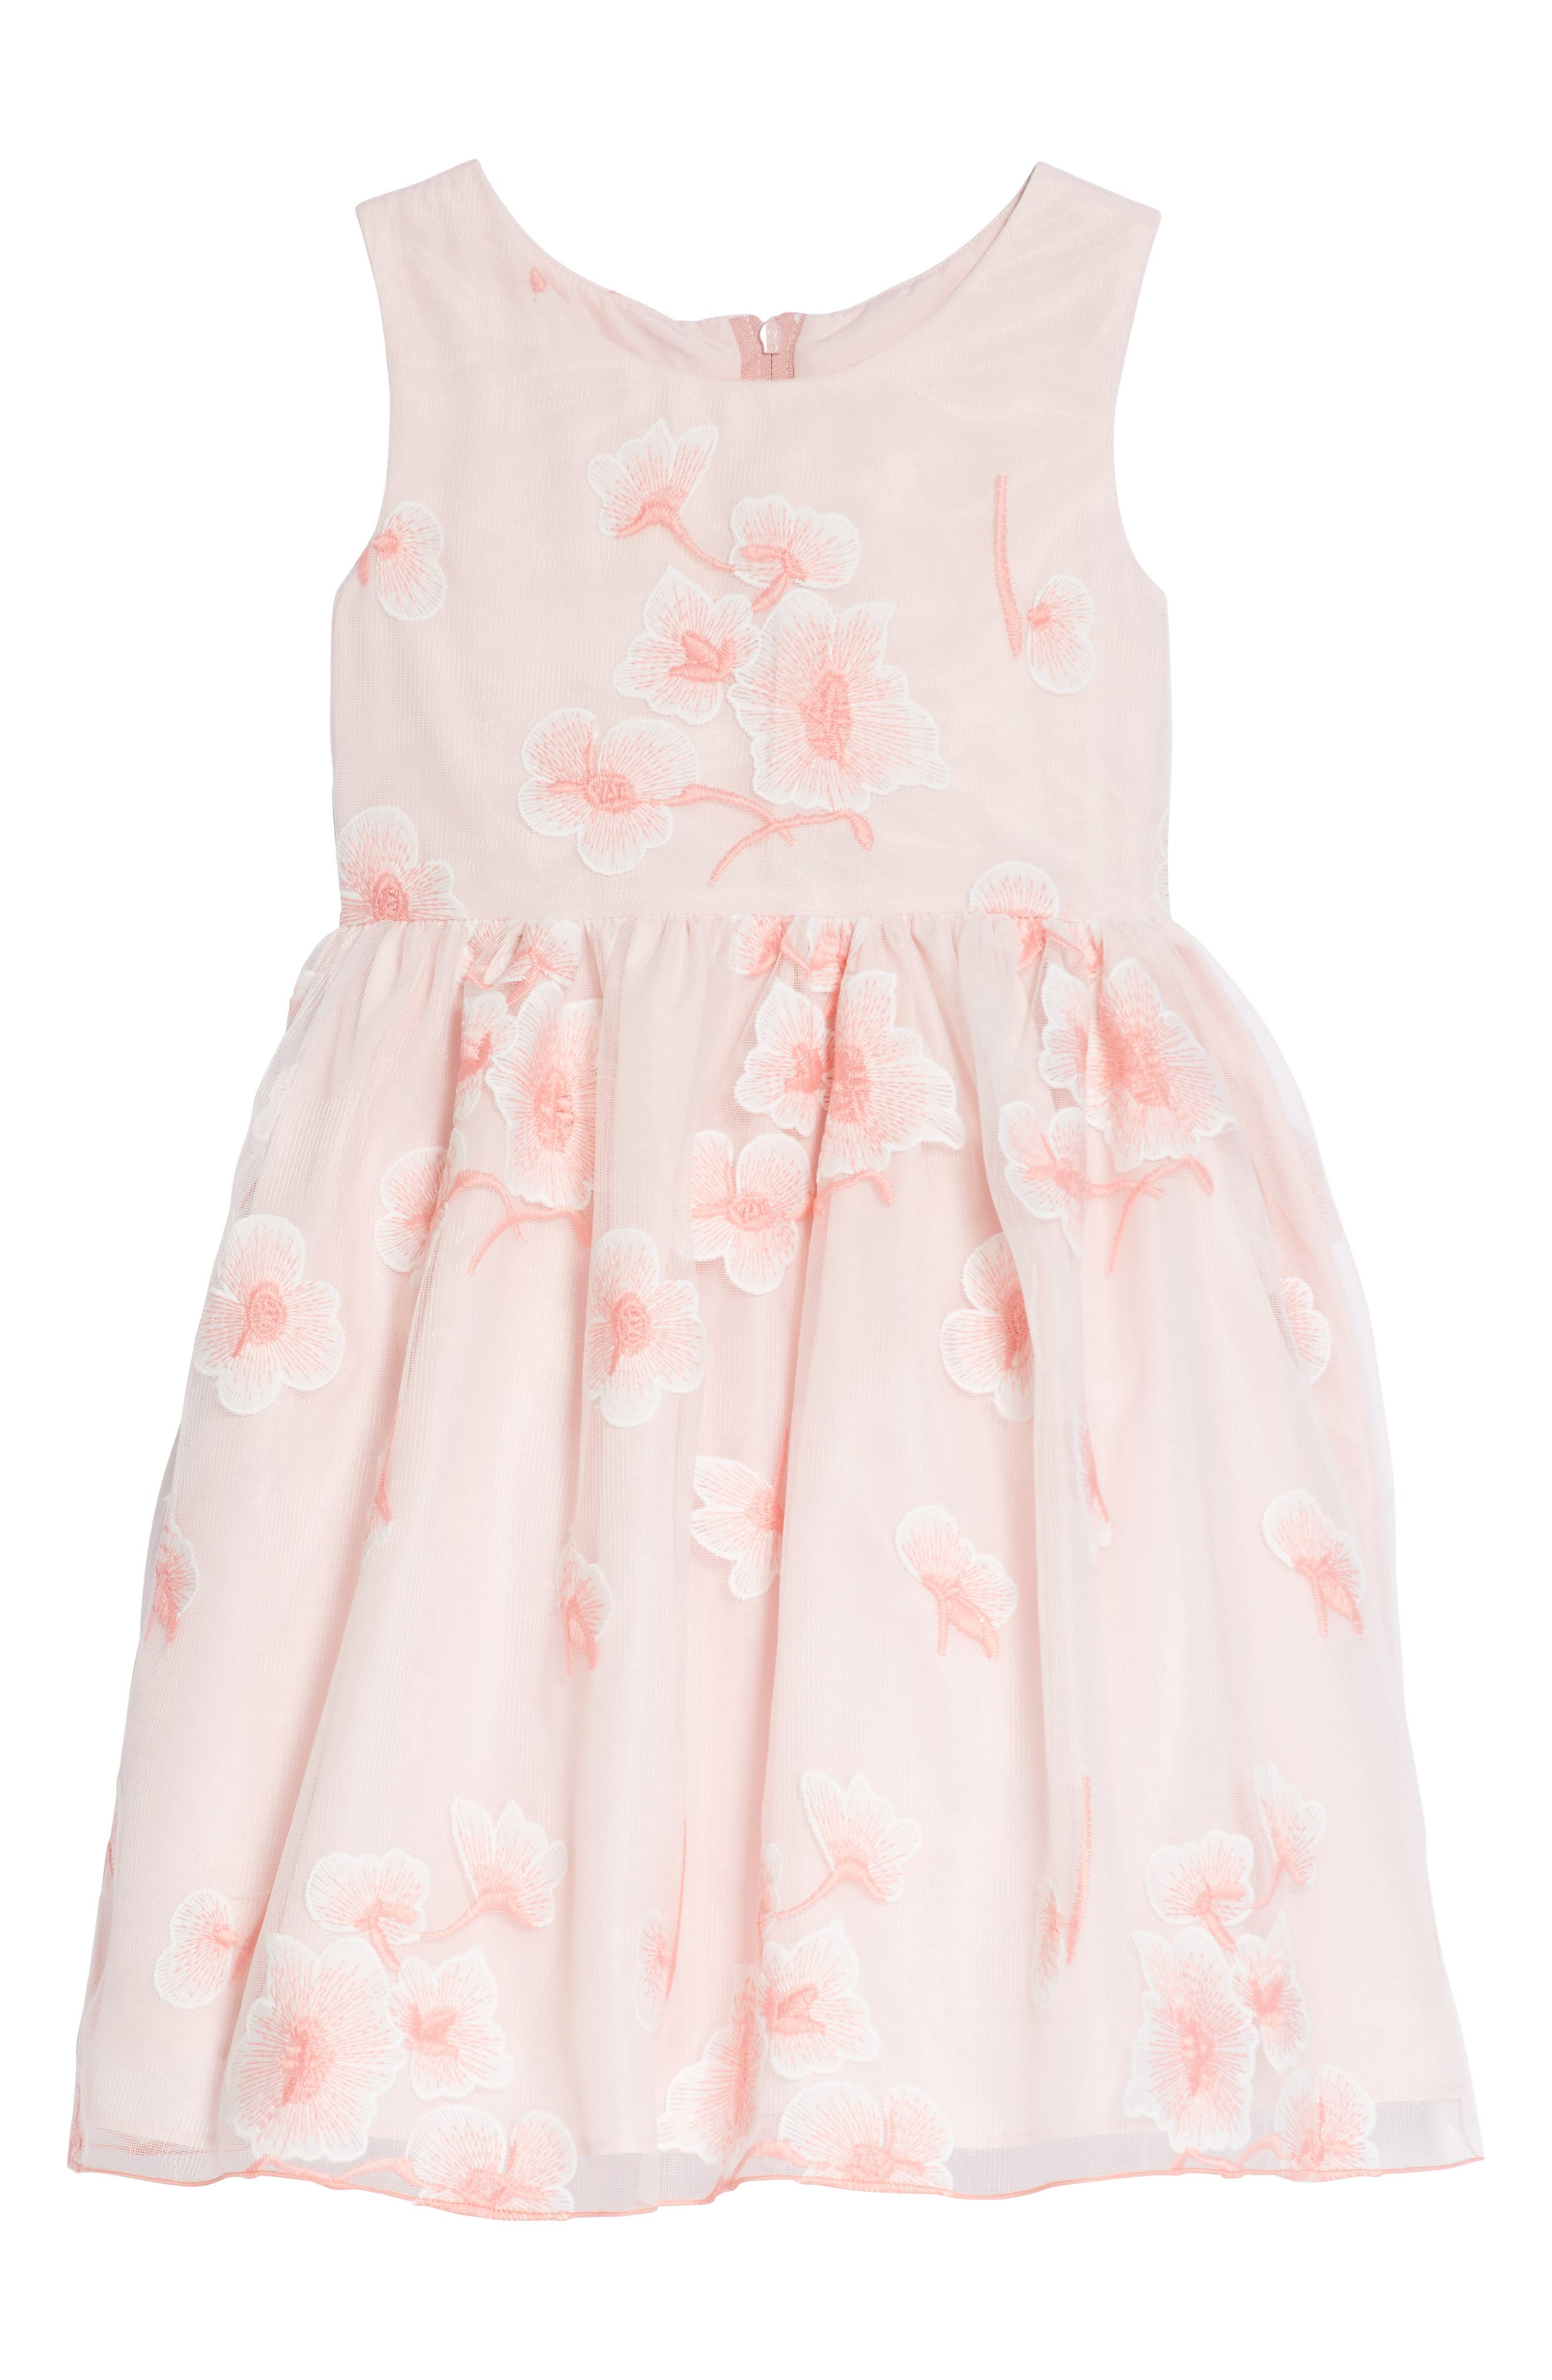 Floral Embroidered Dress,                         Main,                         color, Pink